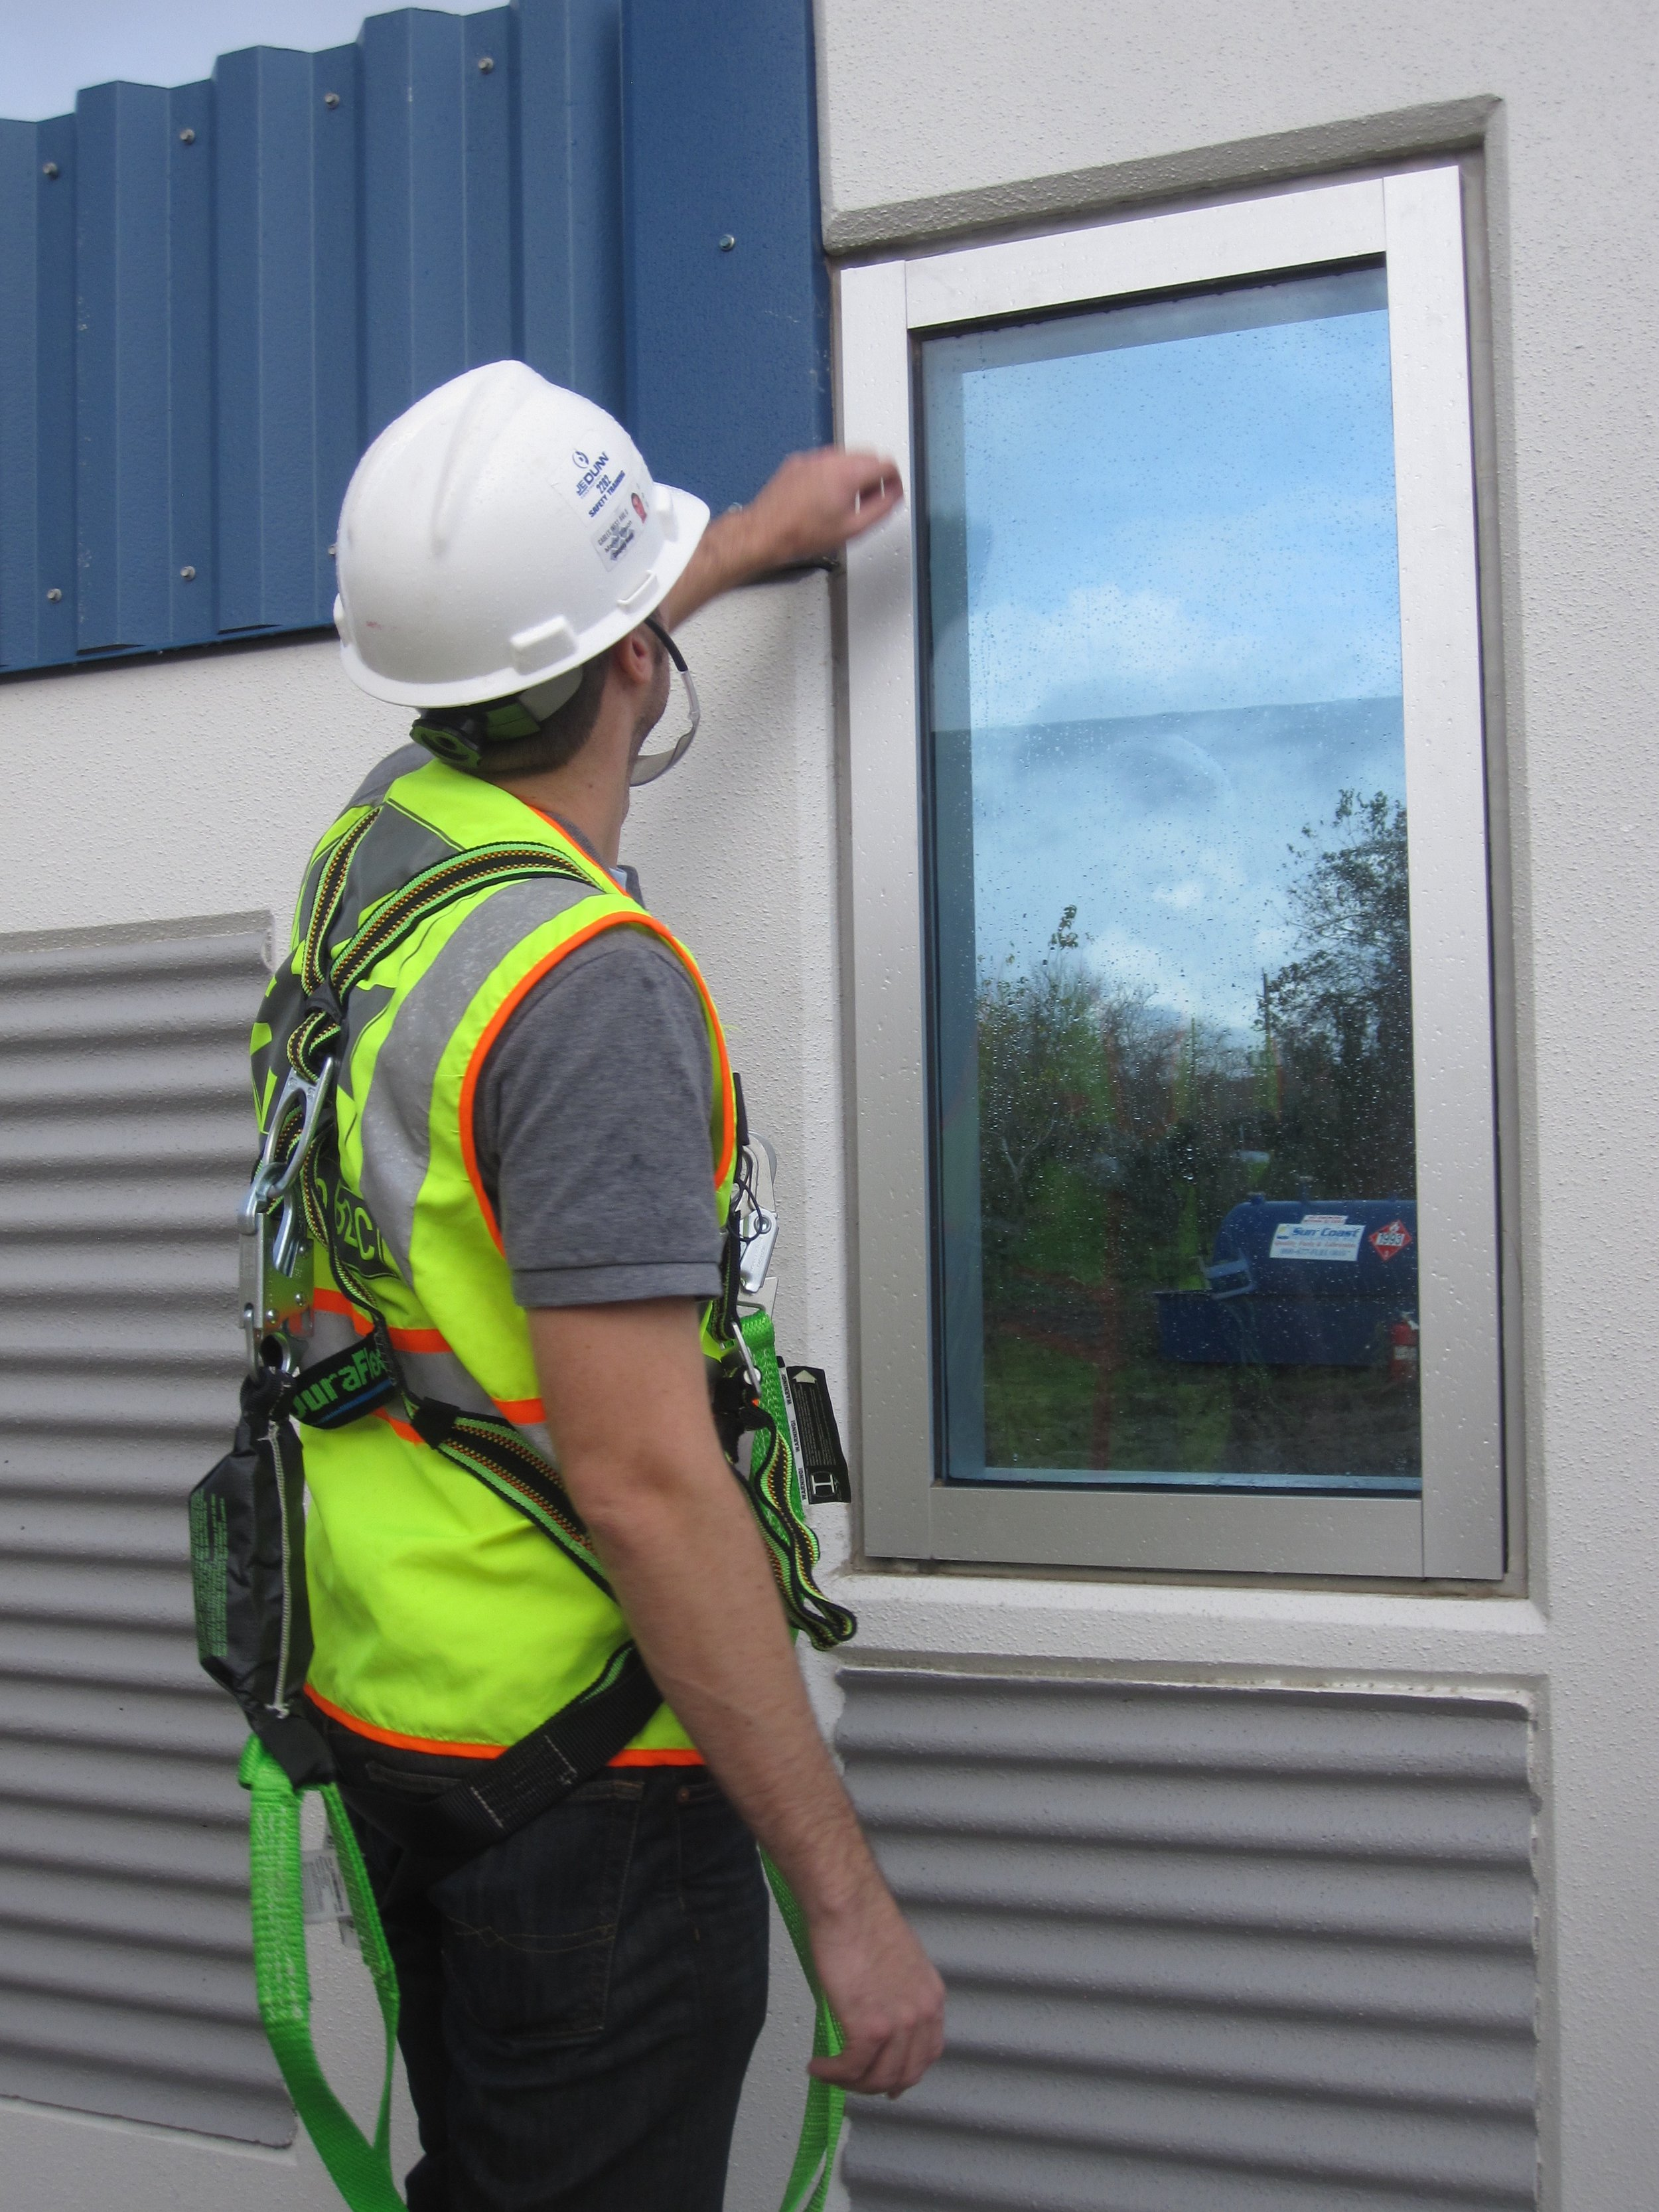 building assessments during construction